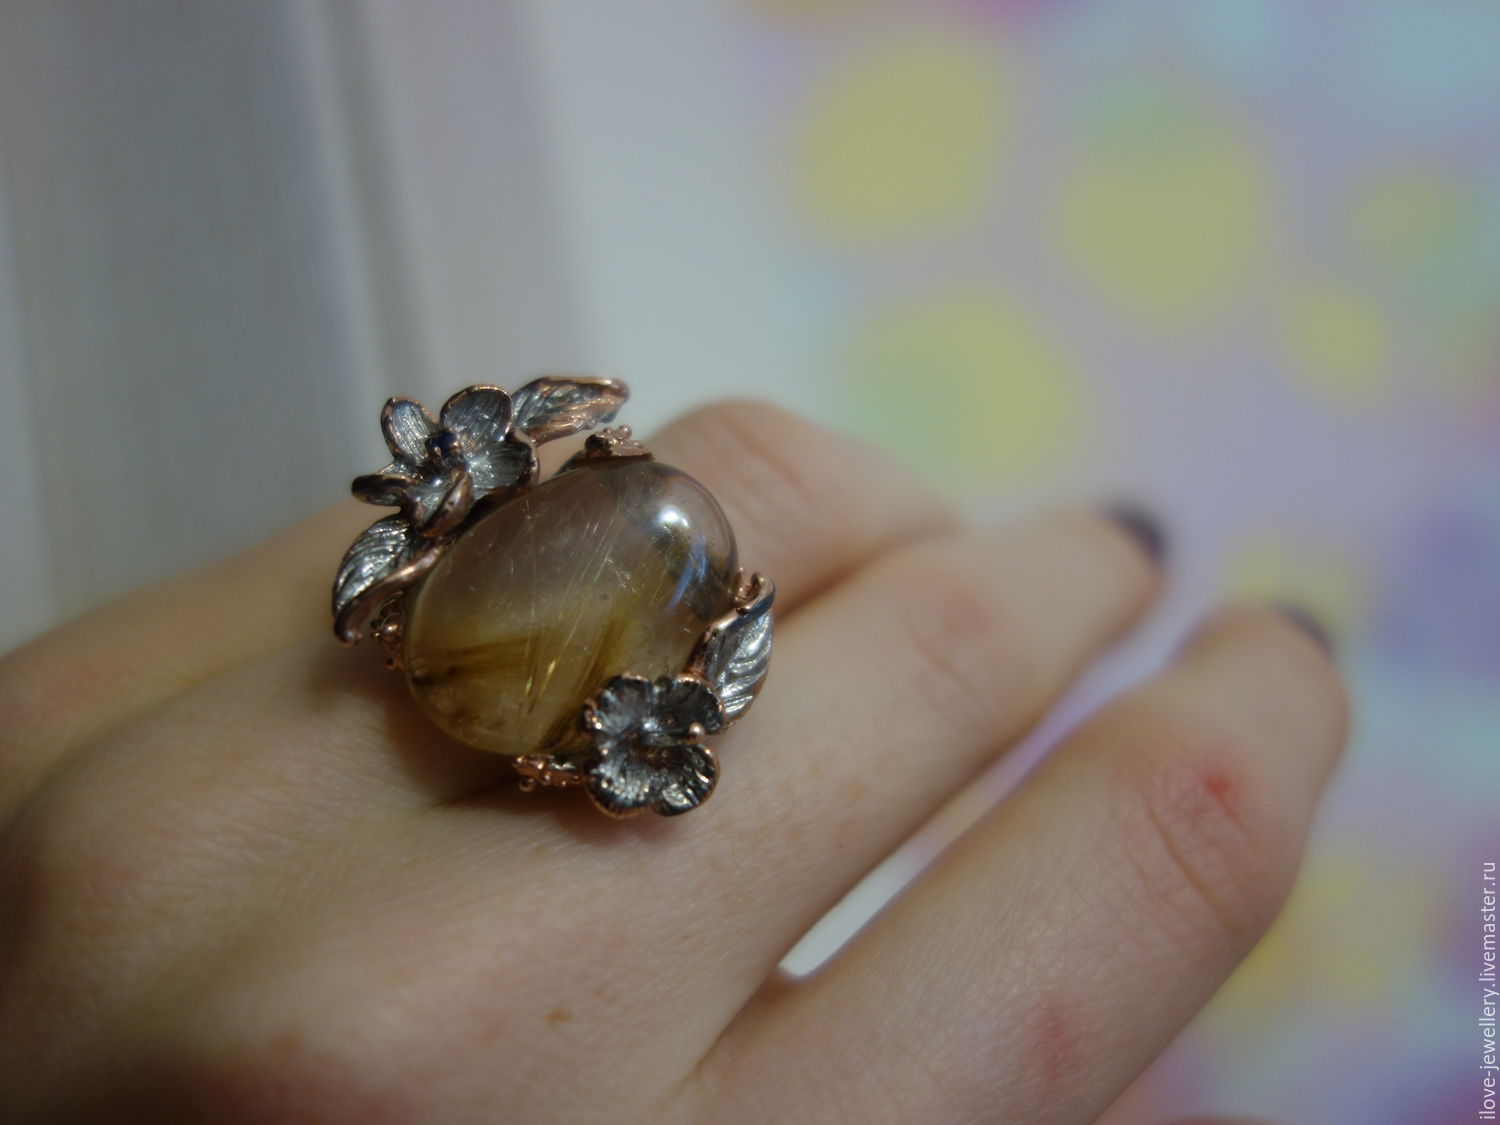 Luigi-beautiful Art ring with rutile quartz and sapphire, Rings, Moscow,  Фото №1